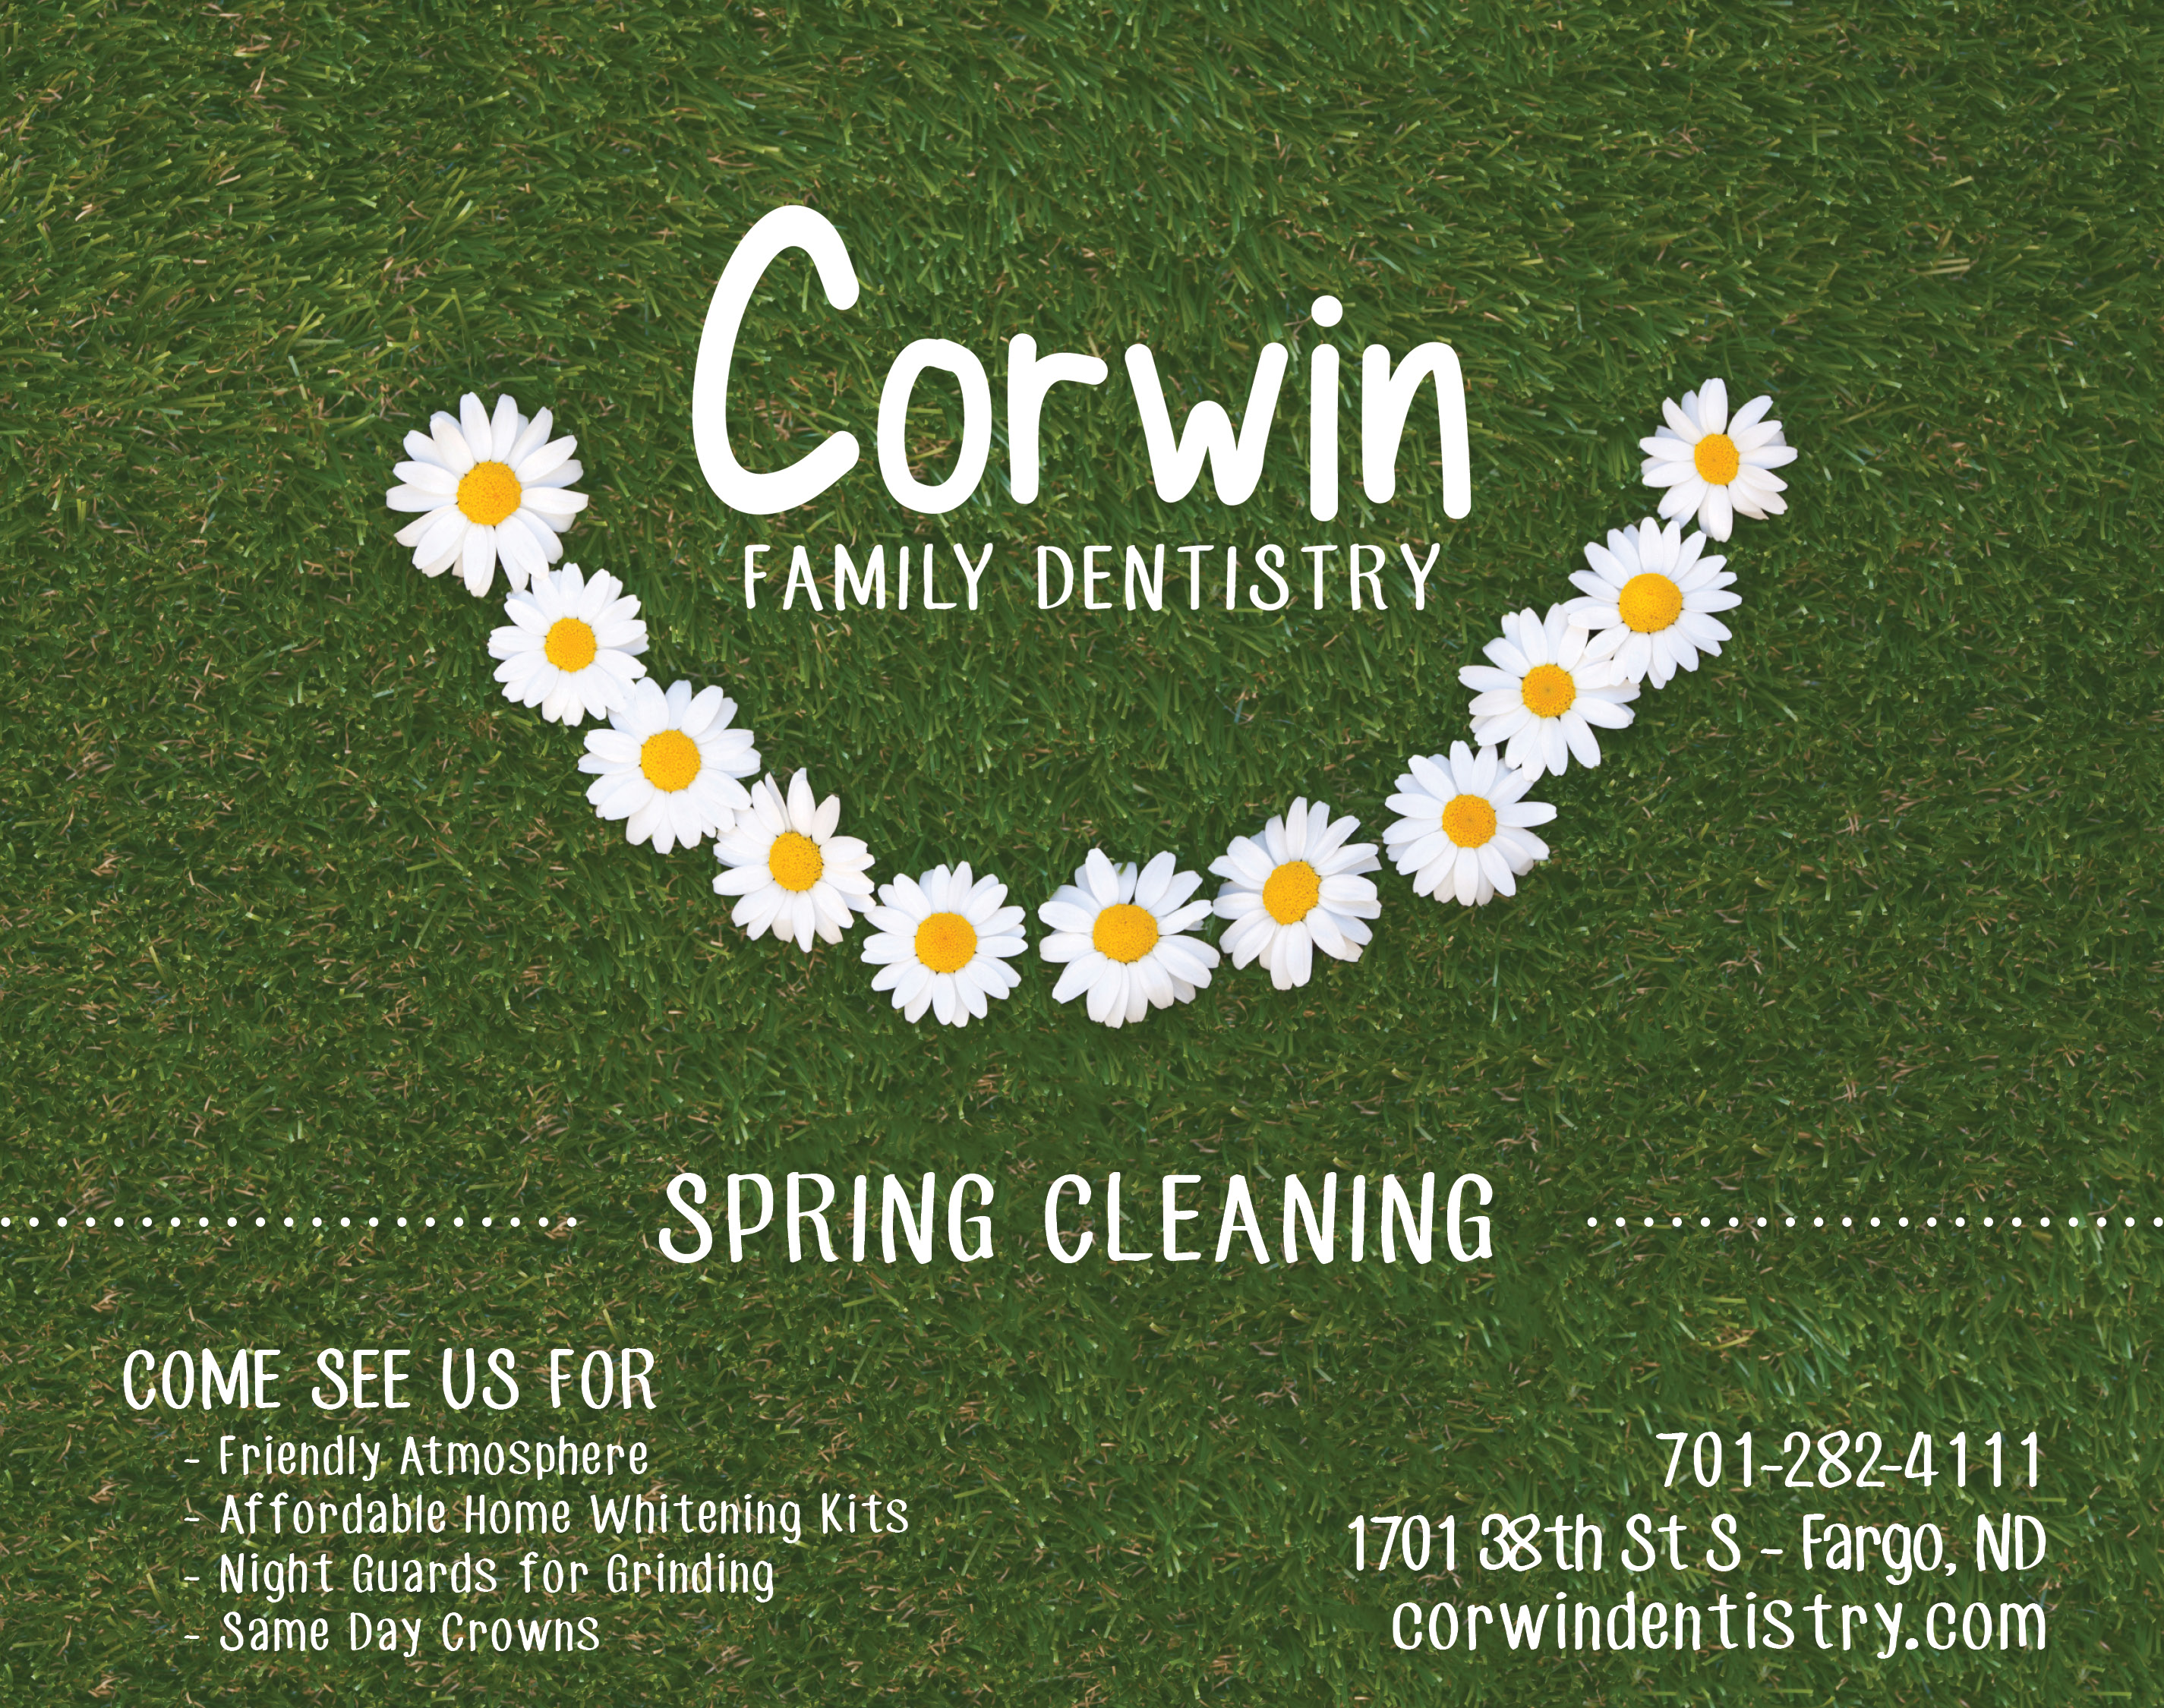 Corwin Dentistry | Indoor Billboards | Off The Wall Advertising